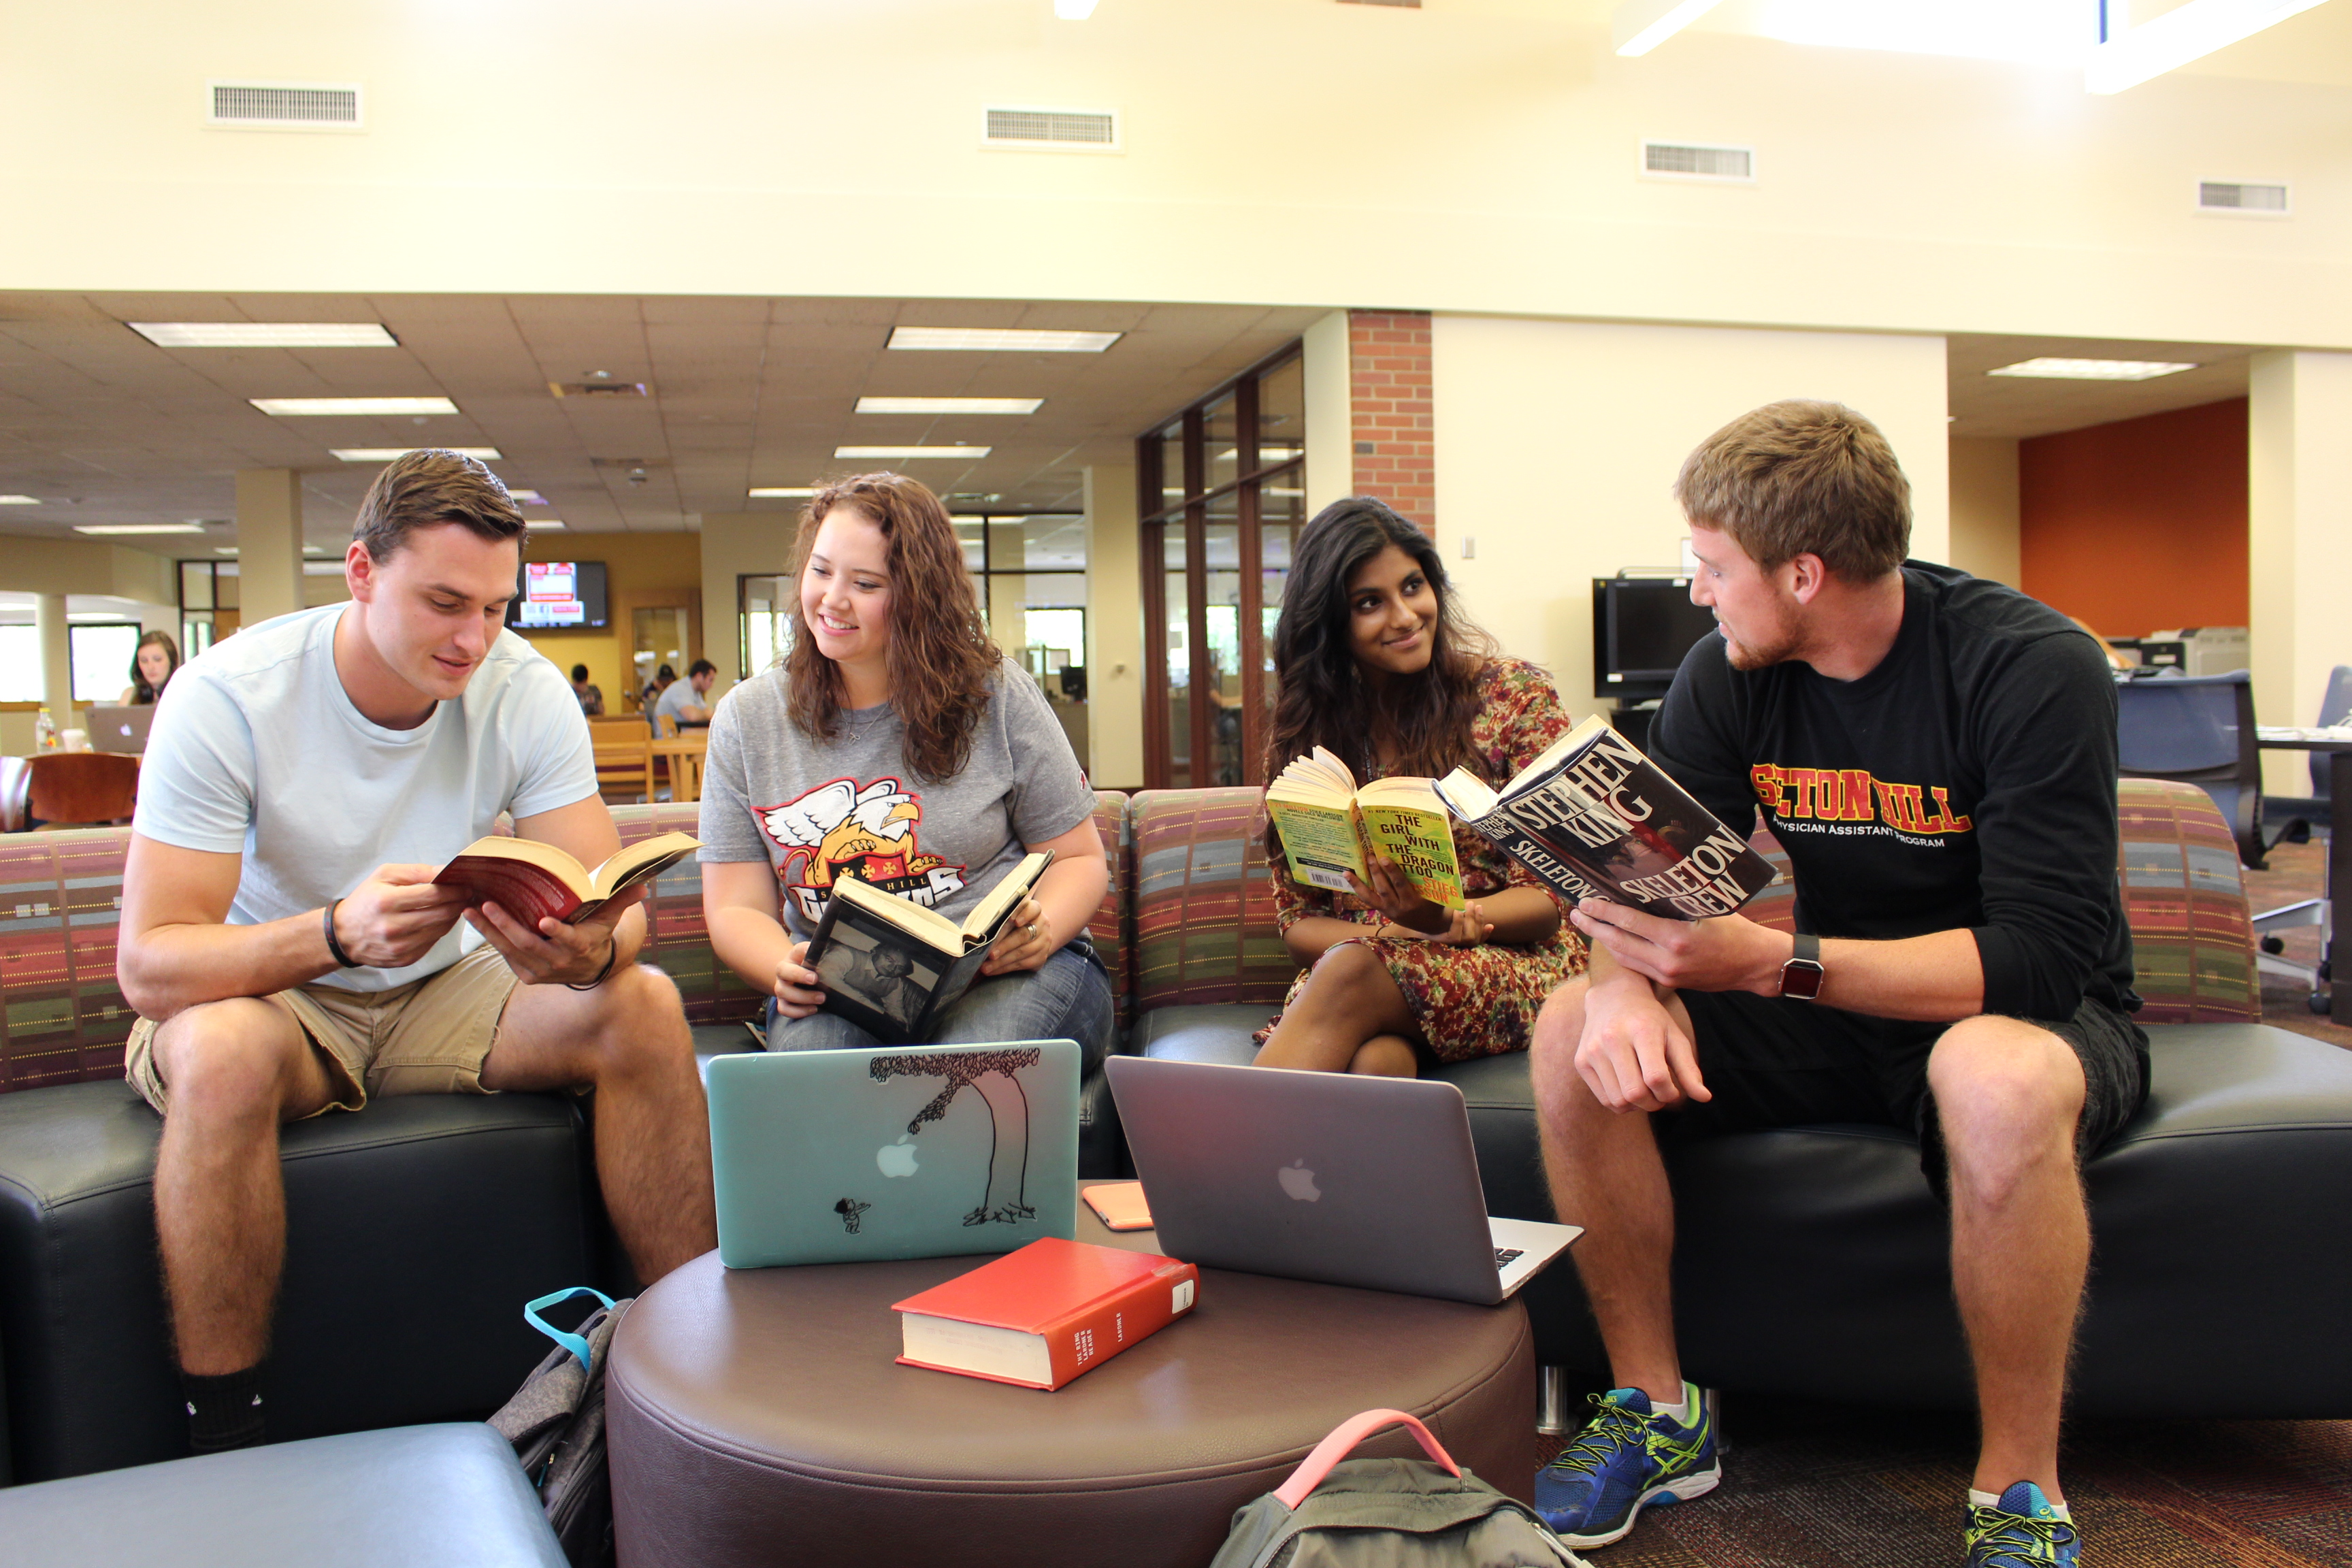 Seton Hill students in Reeves Learning Commons